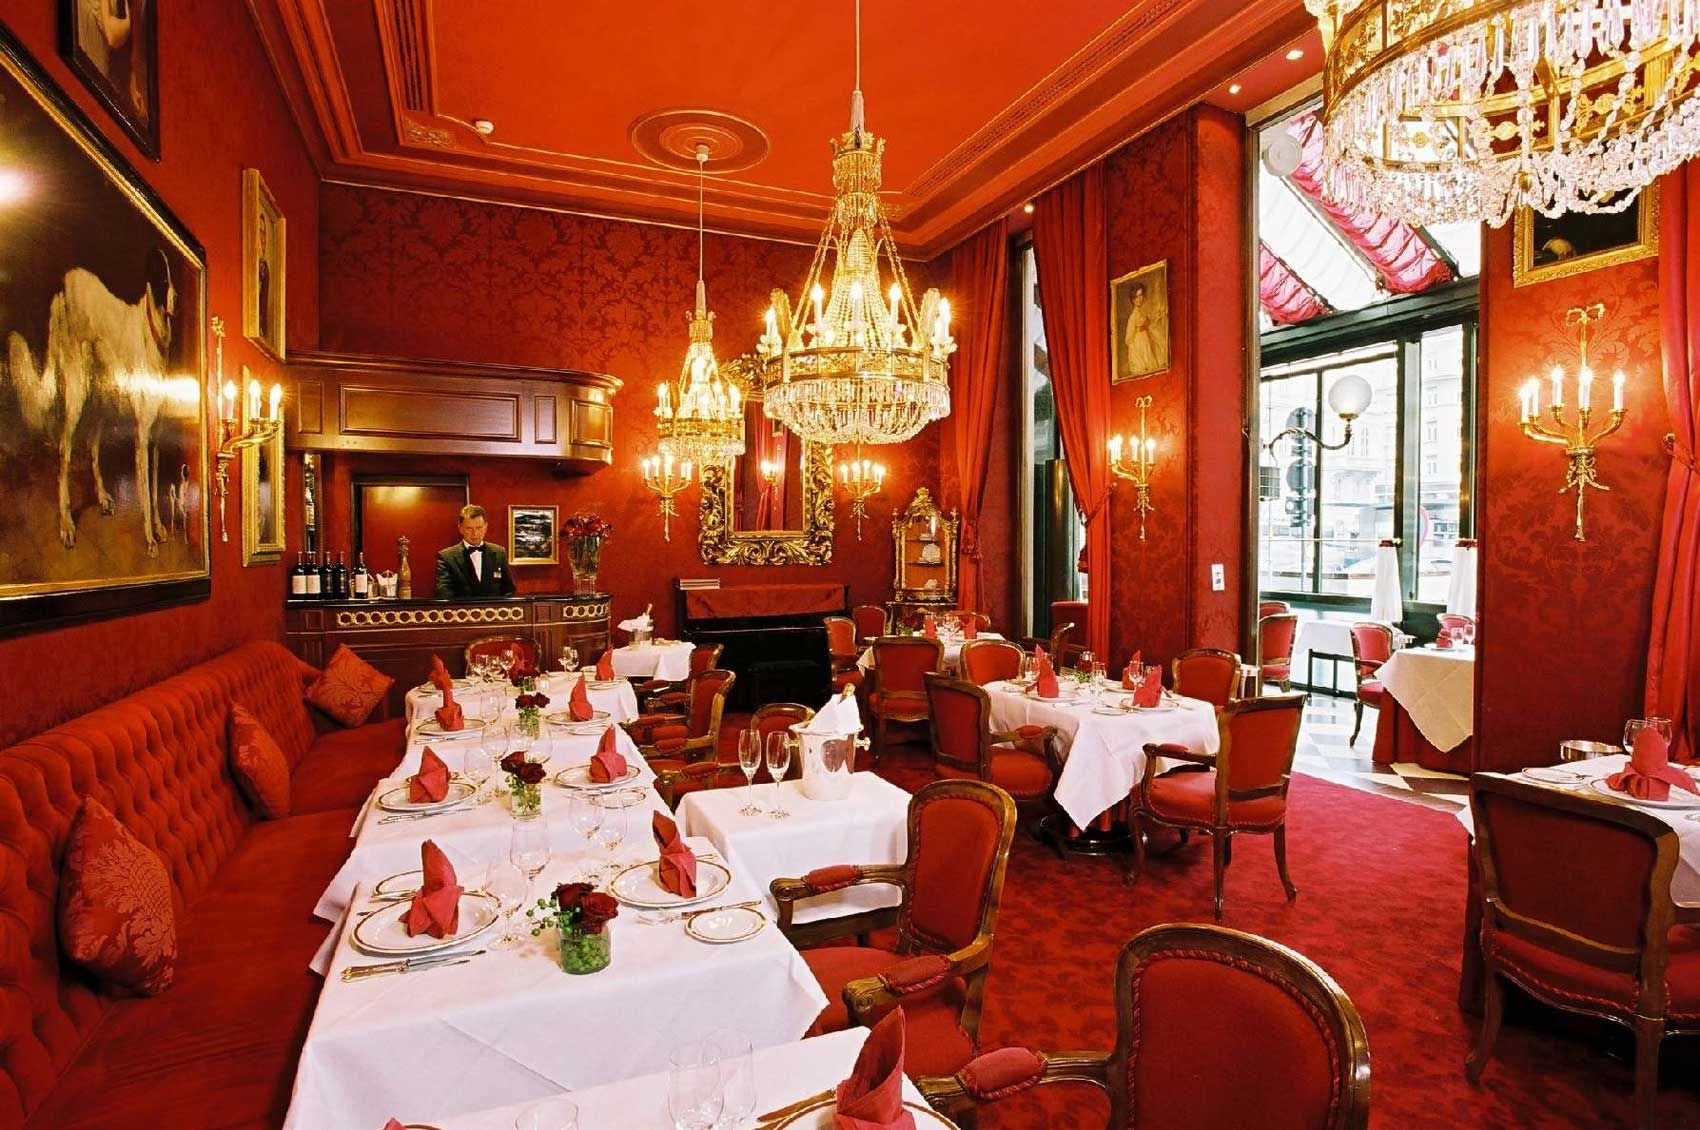 hotel sacher vienna austria winner of fodor 39 s travel hotel awards for global icon cool. Black Bedroom Furniture Sets. Home Design Ideas